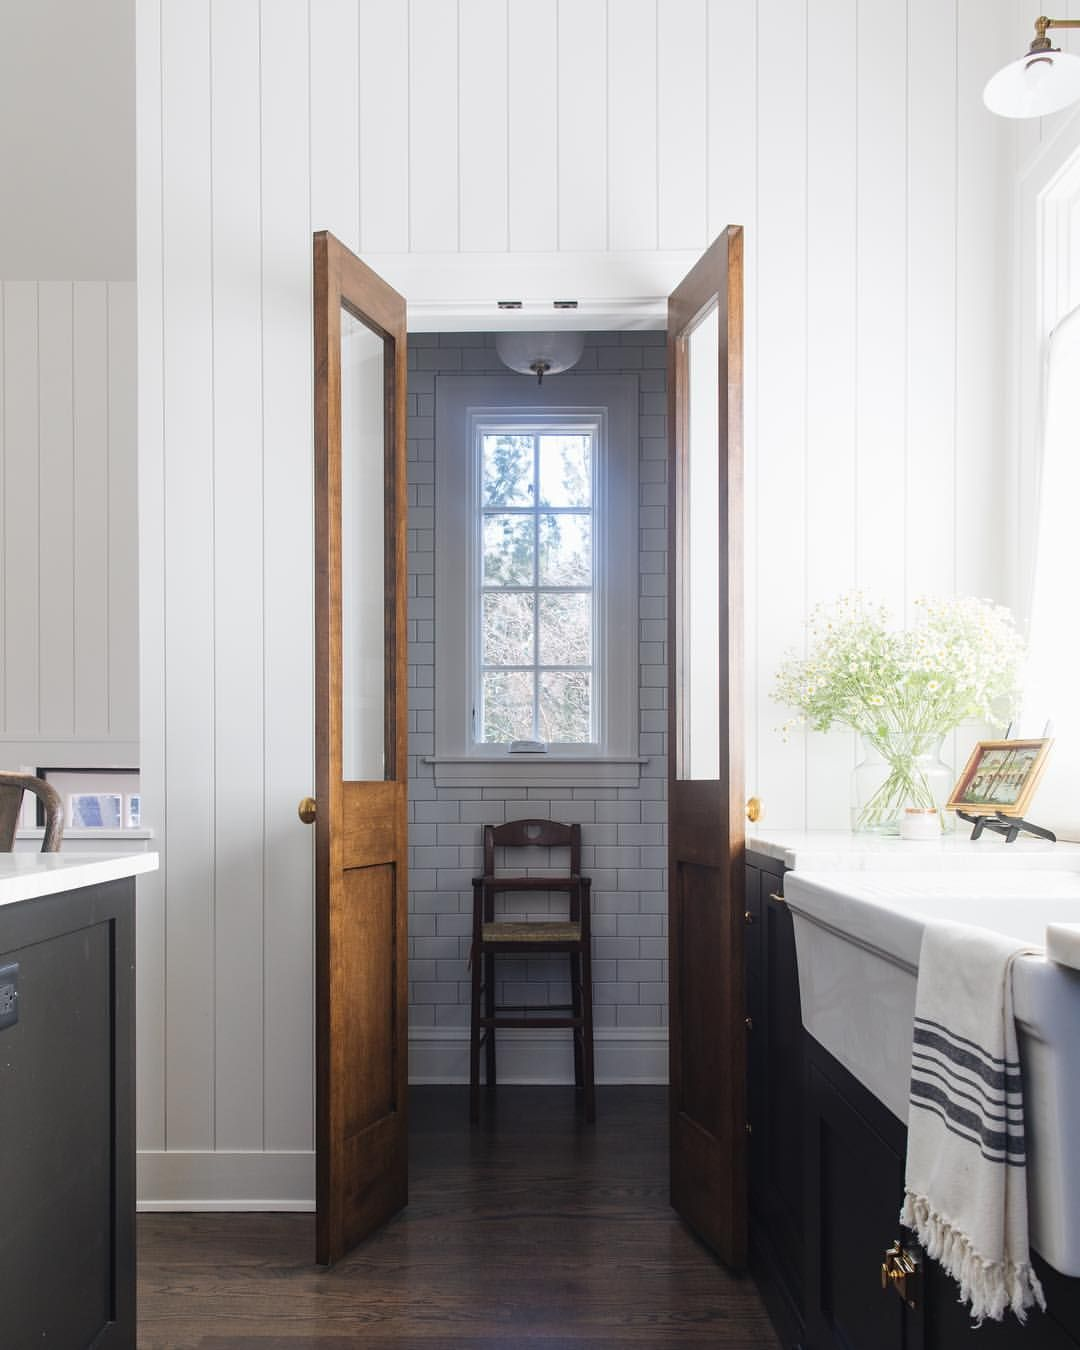 Galley Kitchen With French Doors: We Are Getting So Much Love From Many Of You On IG Because